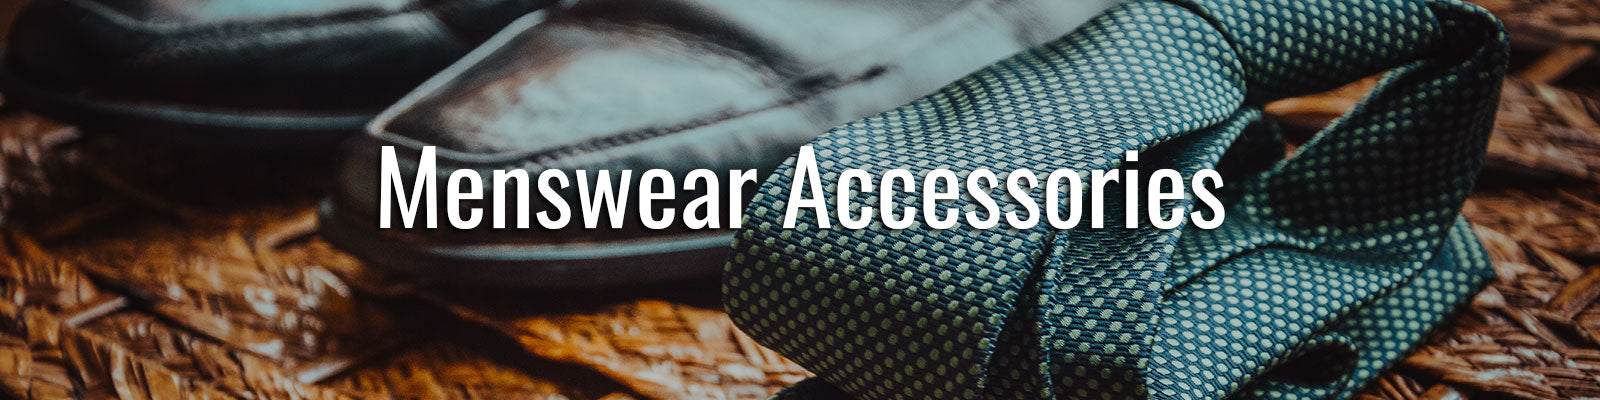 Menswear Accessories